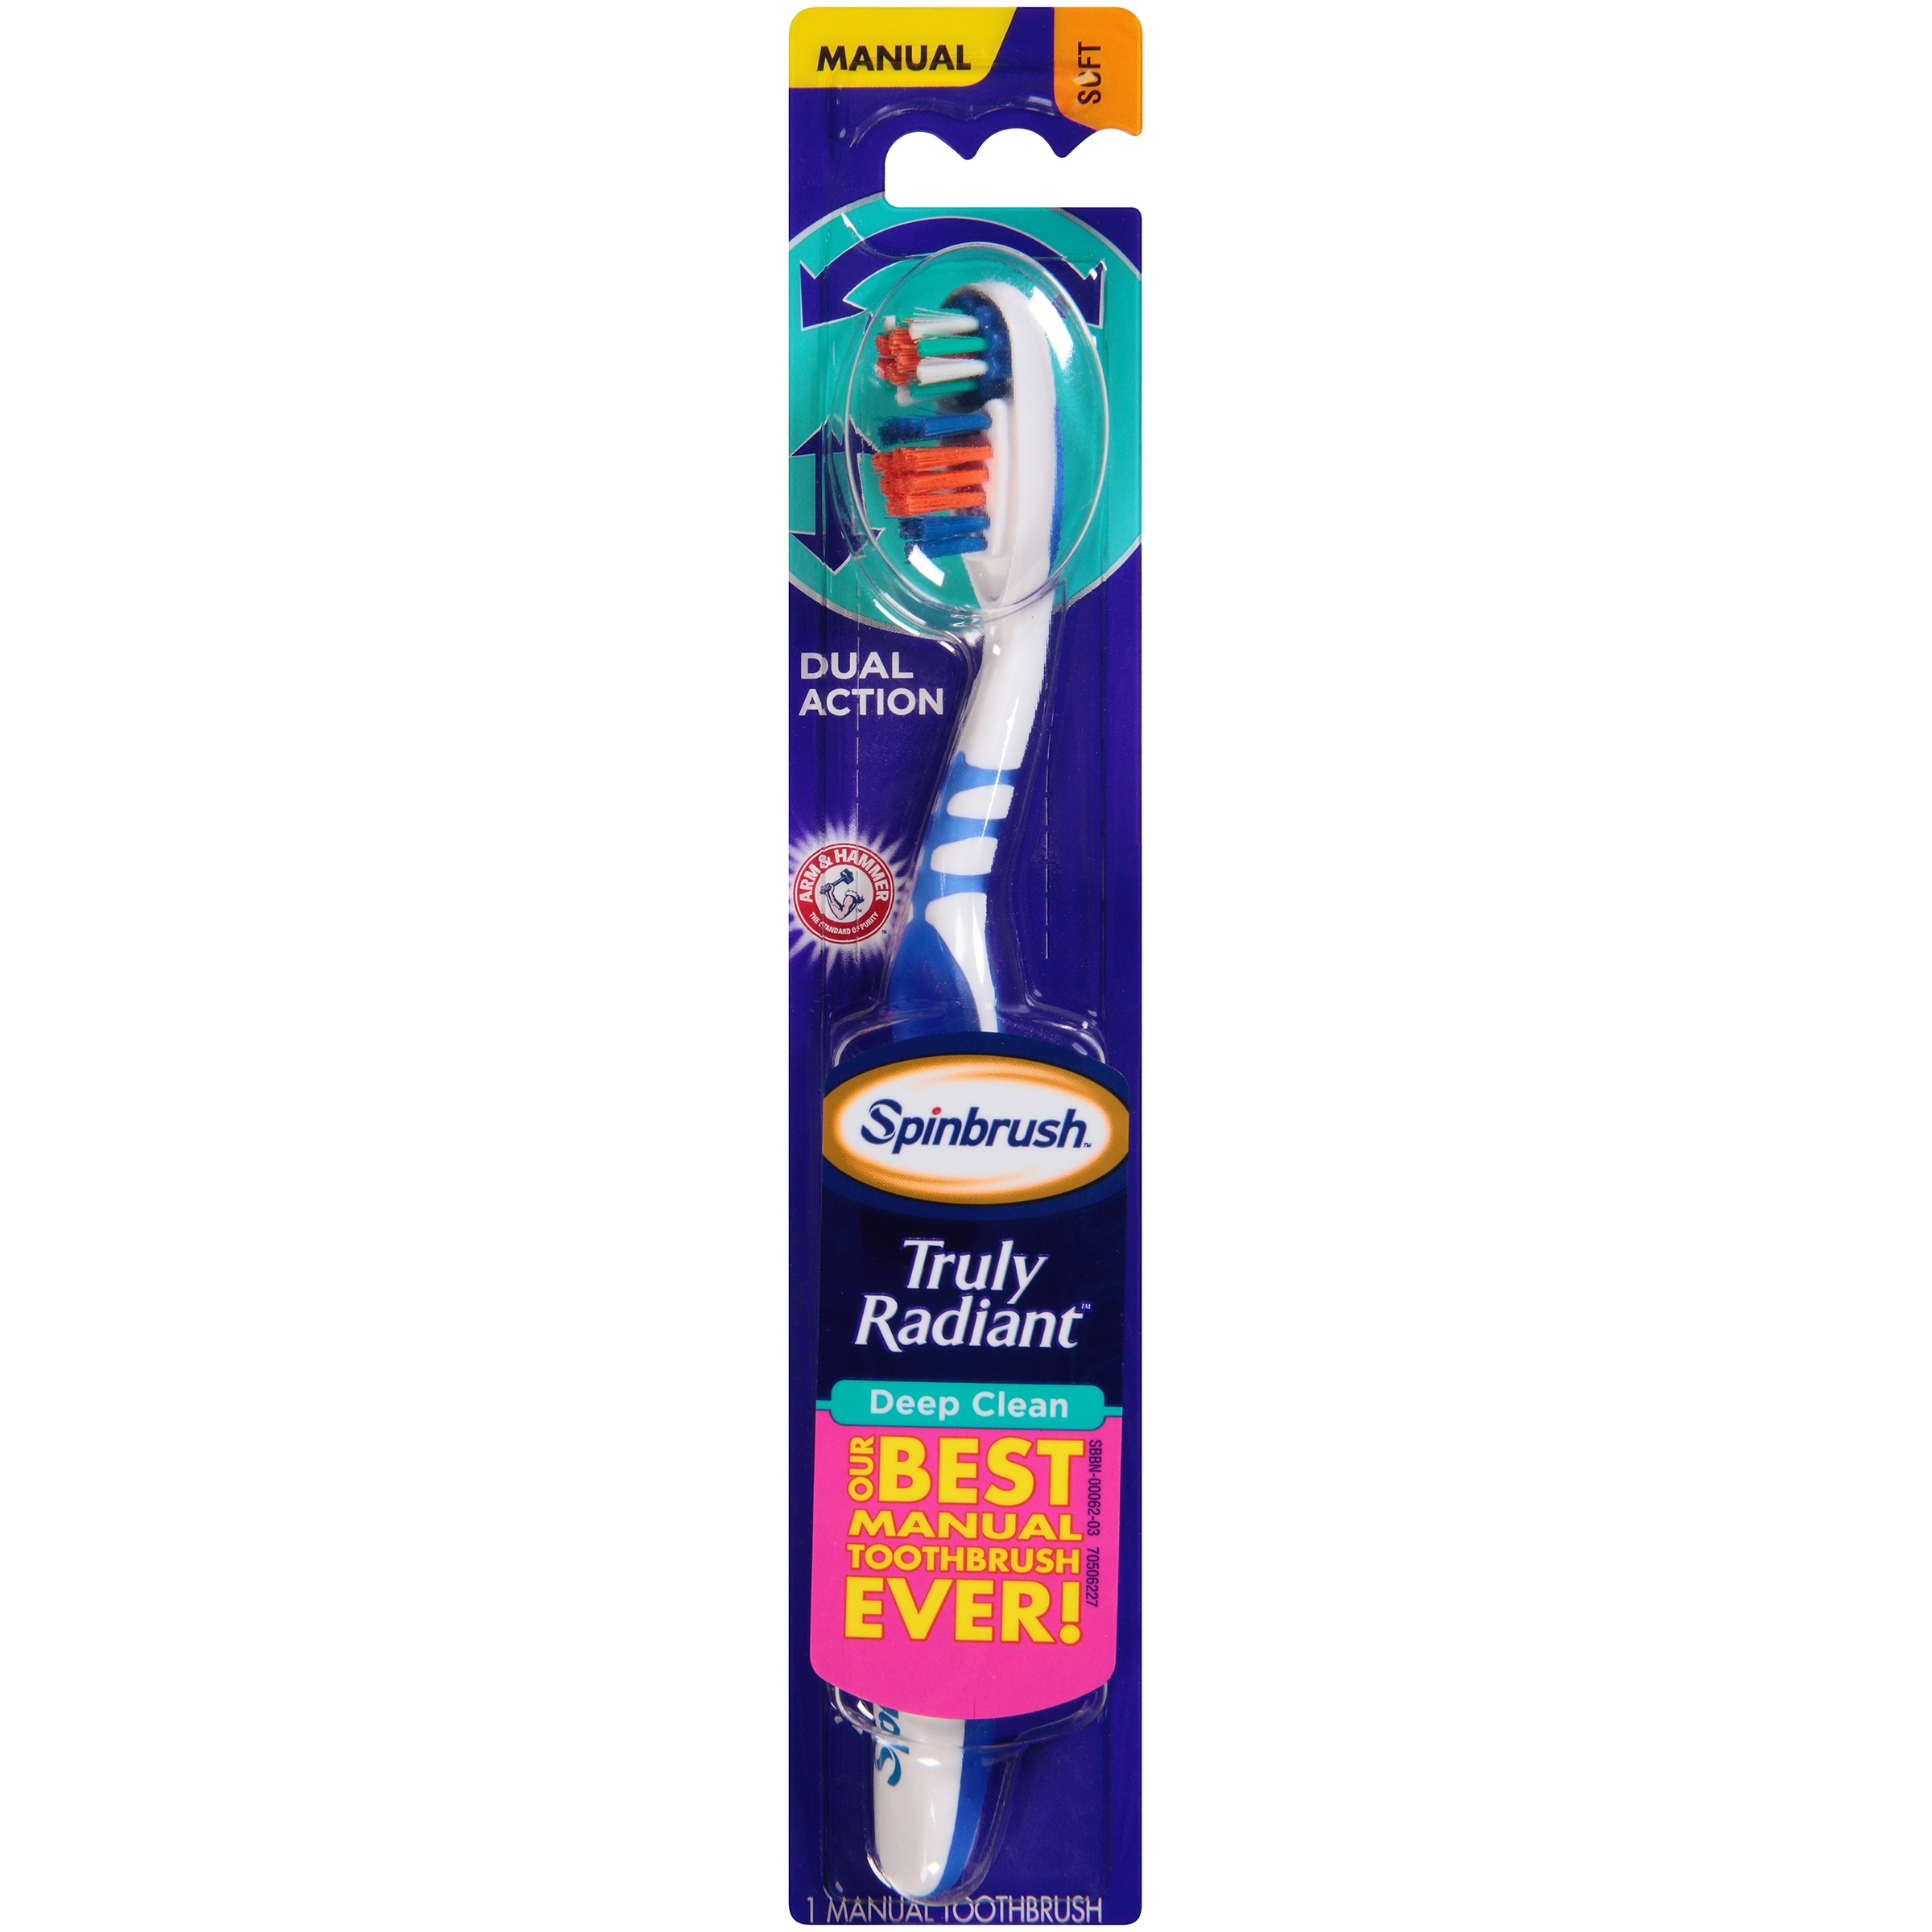 (3 Pack) Arm & Hammer™ Spinbrush™ Truly Radiant™ Deep Clean Soft Manual Toothbrush Carded Pack